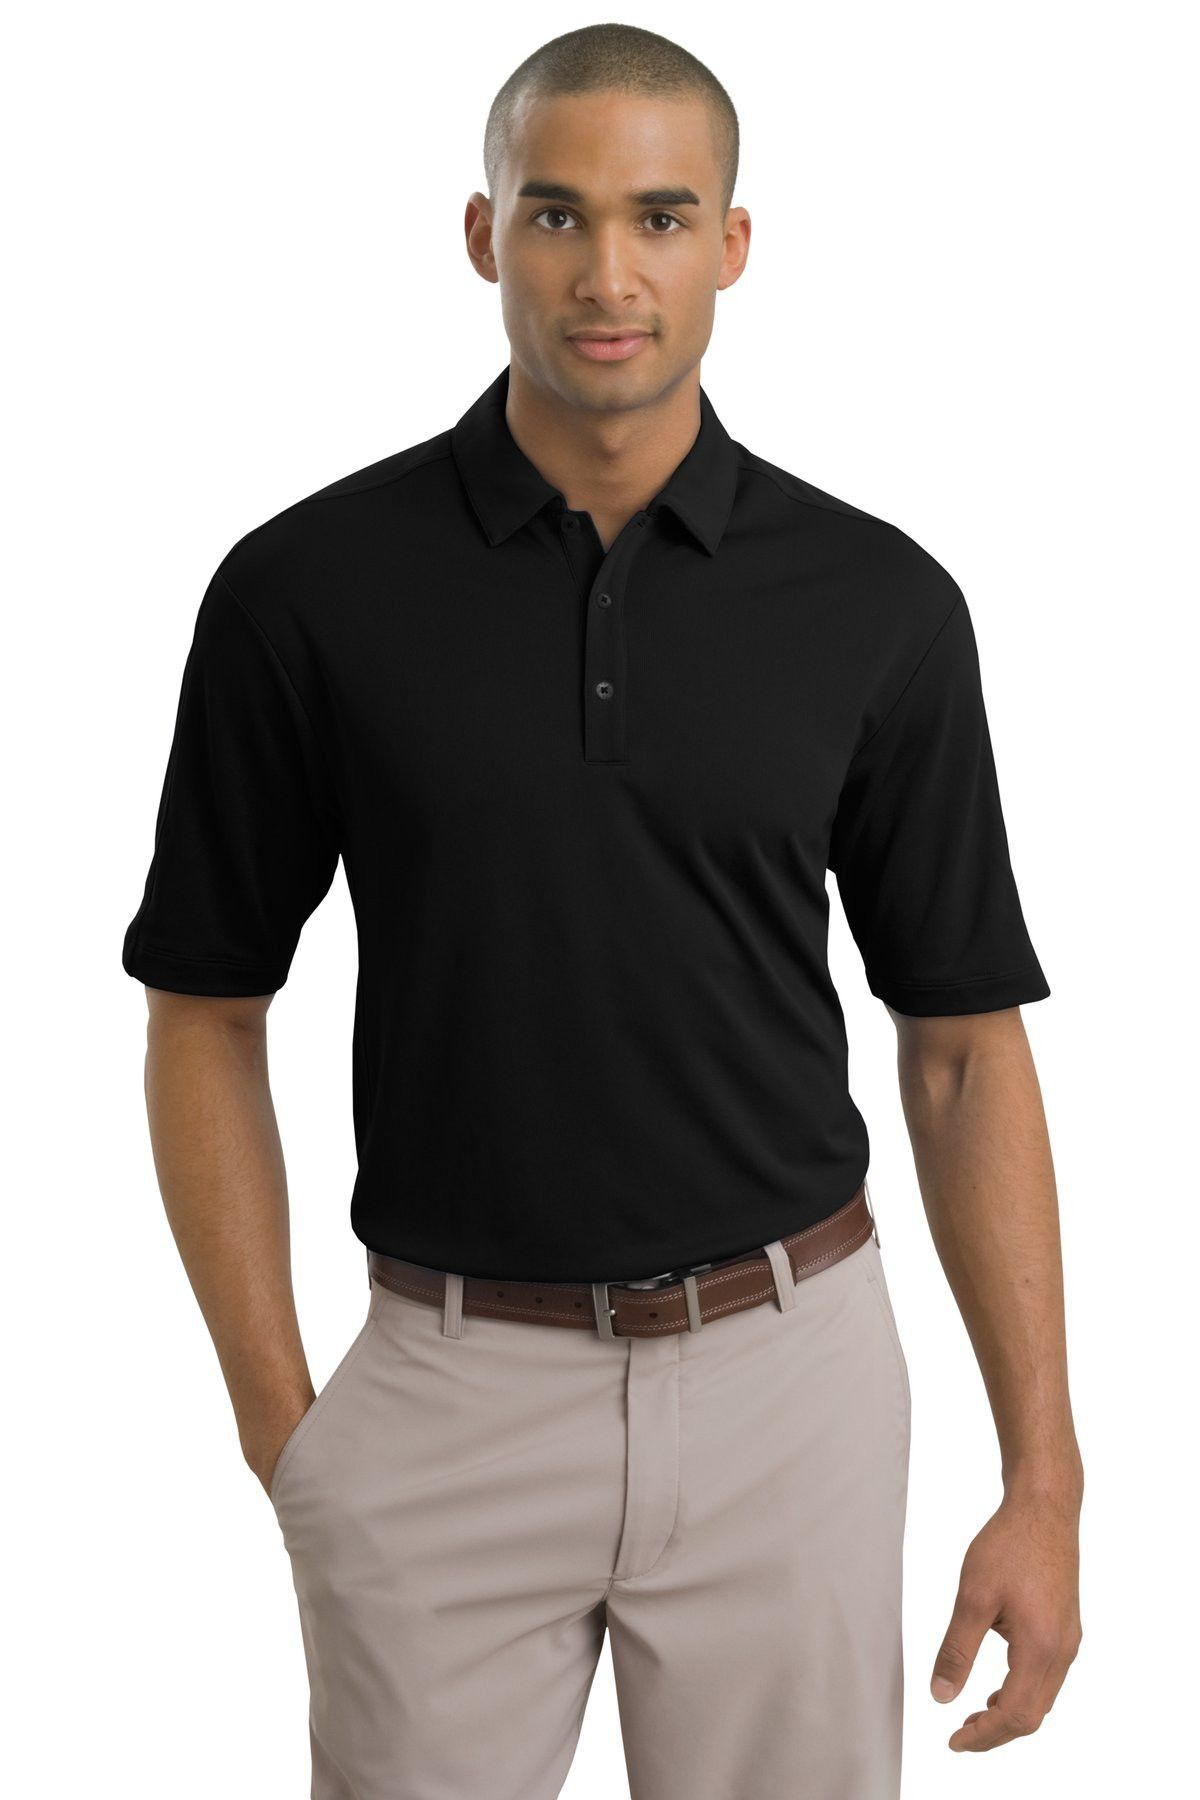 Nike Golf - Tech Sport Dri-FIT Polo.266998 Black